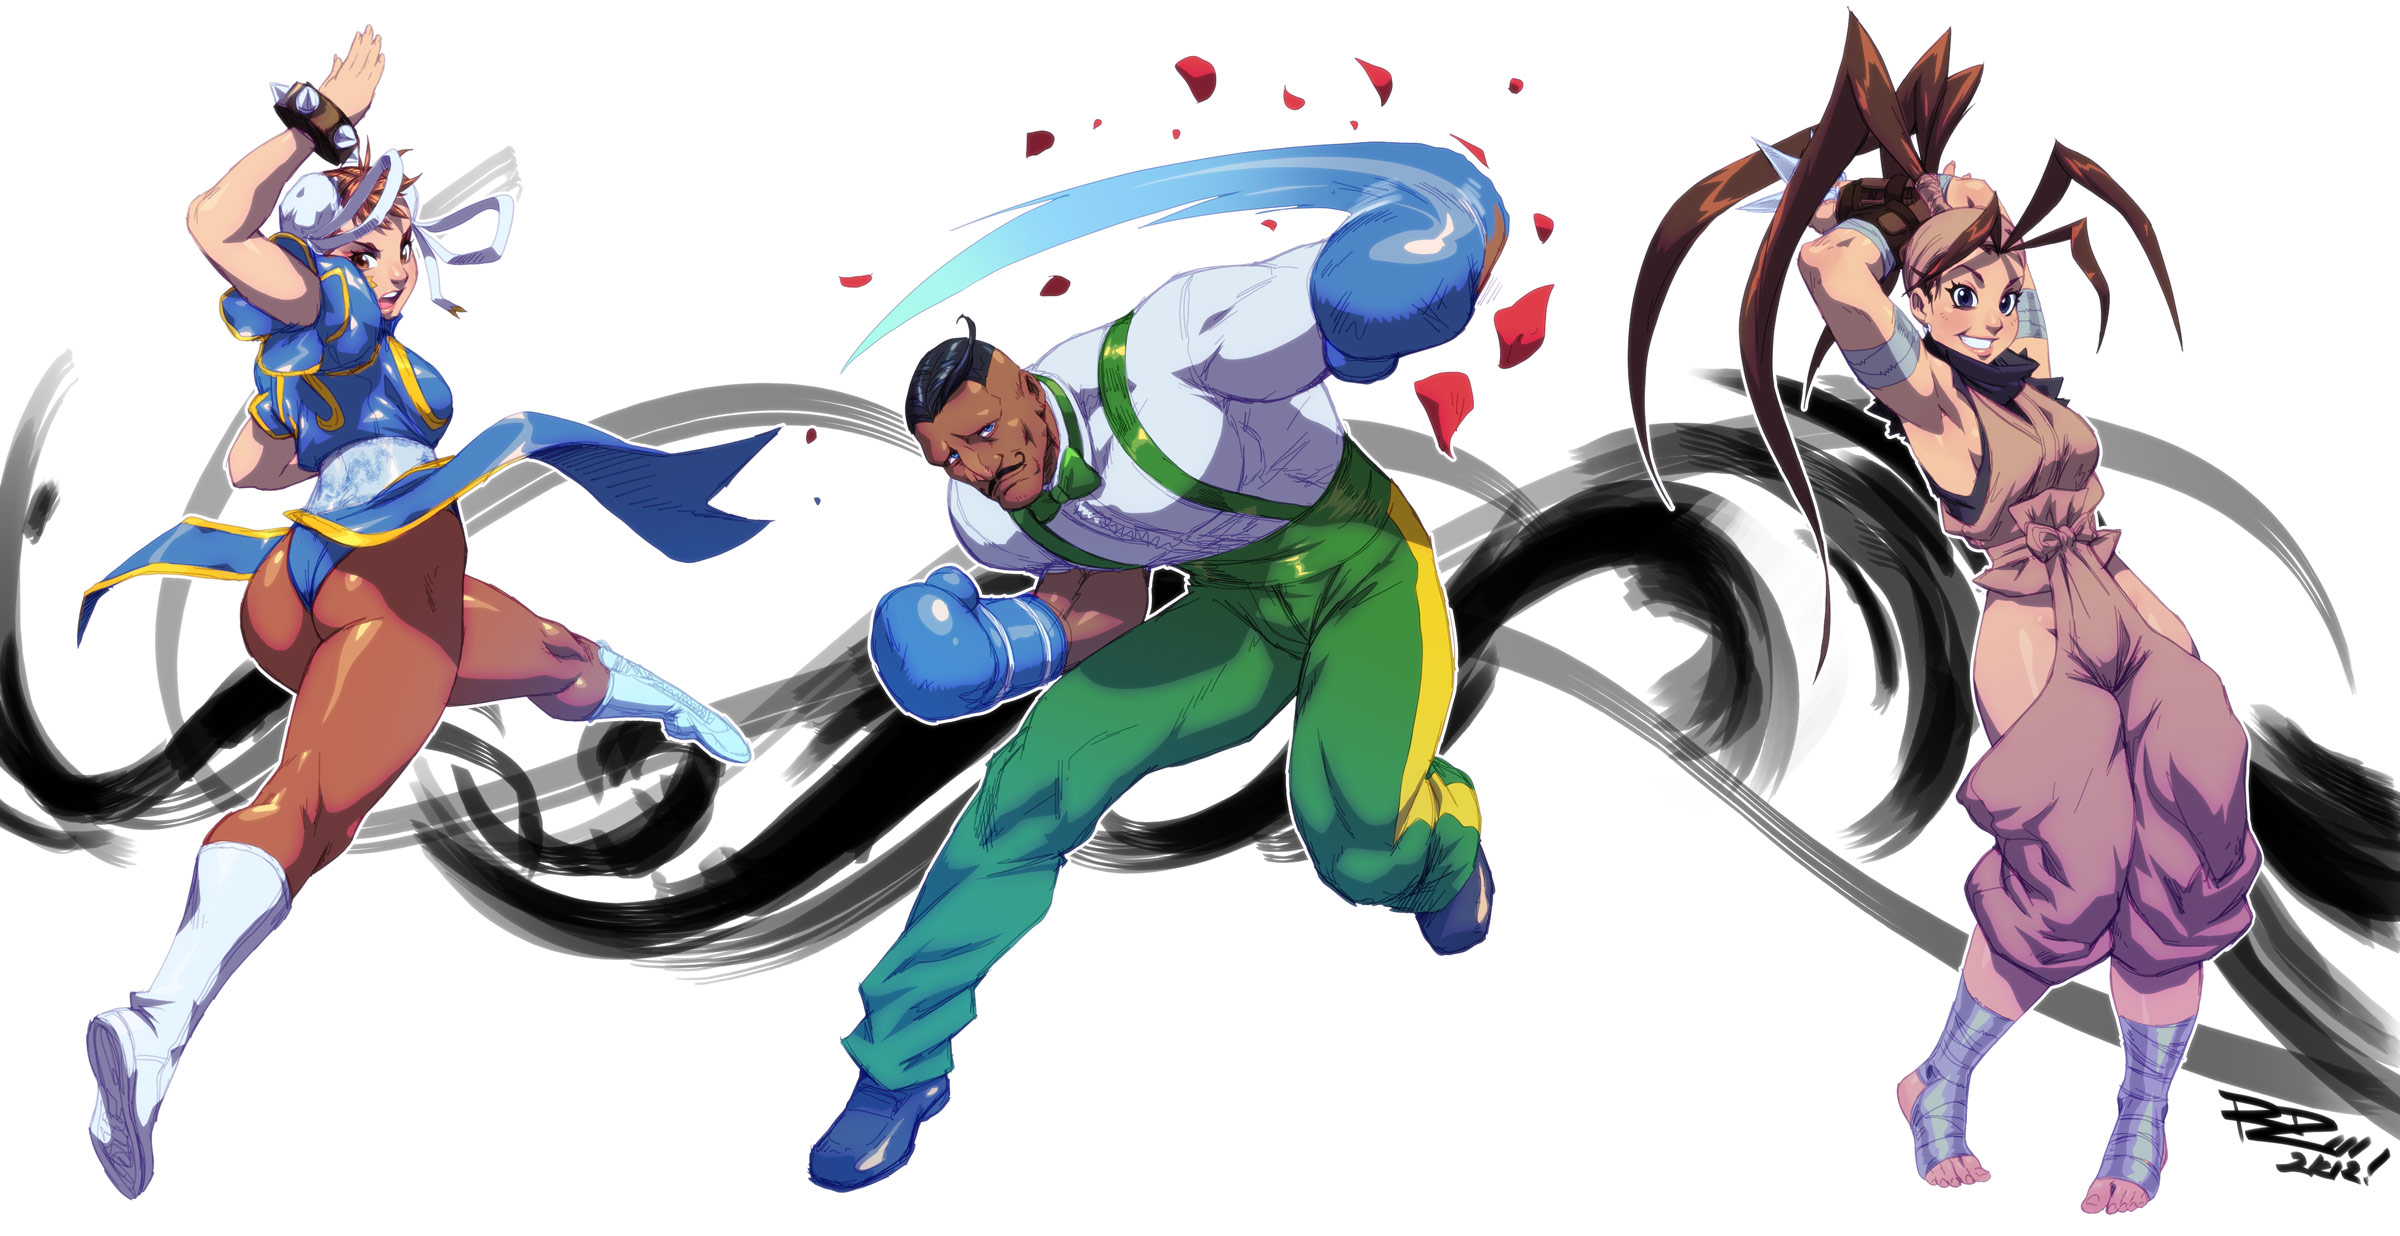 Udon fighting game related artwork image #5